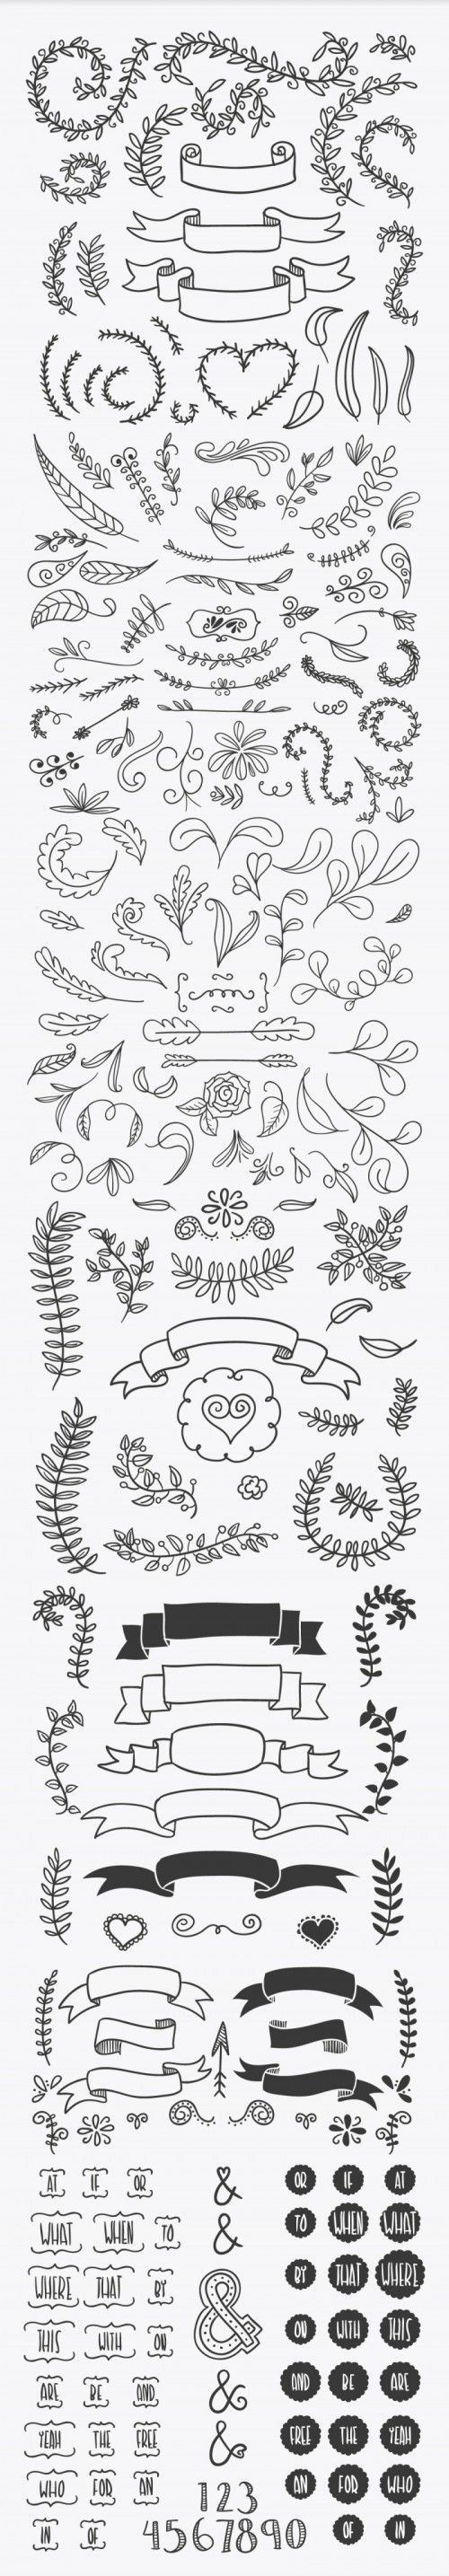 Handsketched Vector Elements 03